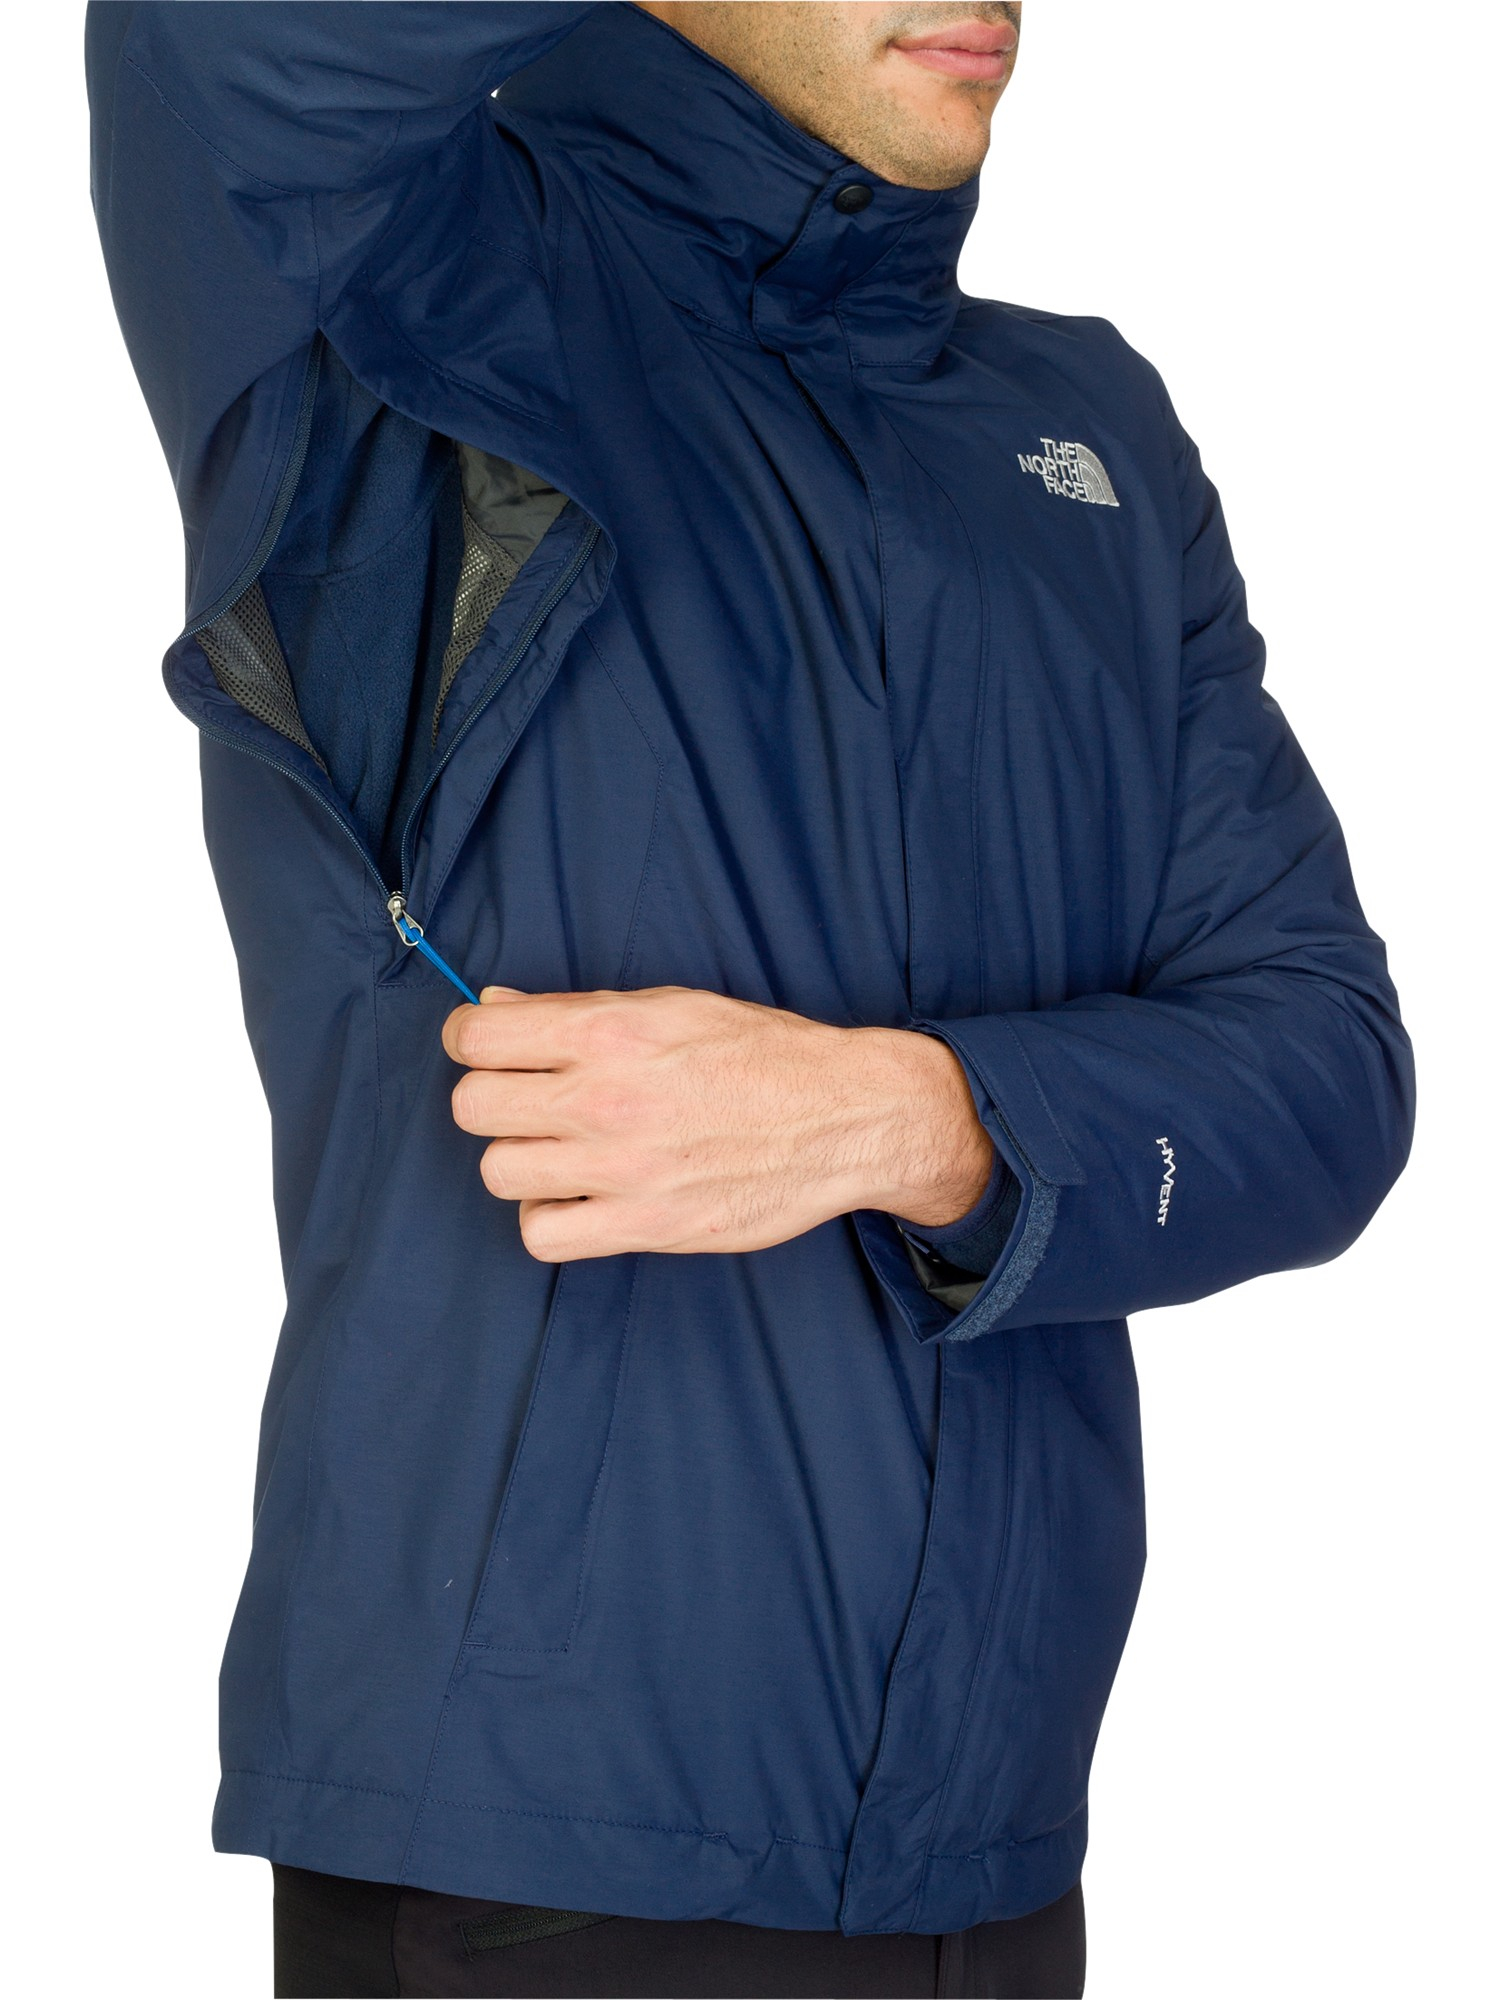 9d3f0e2347d ... canada the north face evolution triclimate 3 in 1 jacket in blue for  men lyst a118e